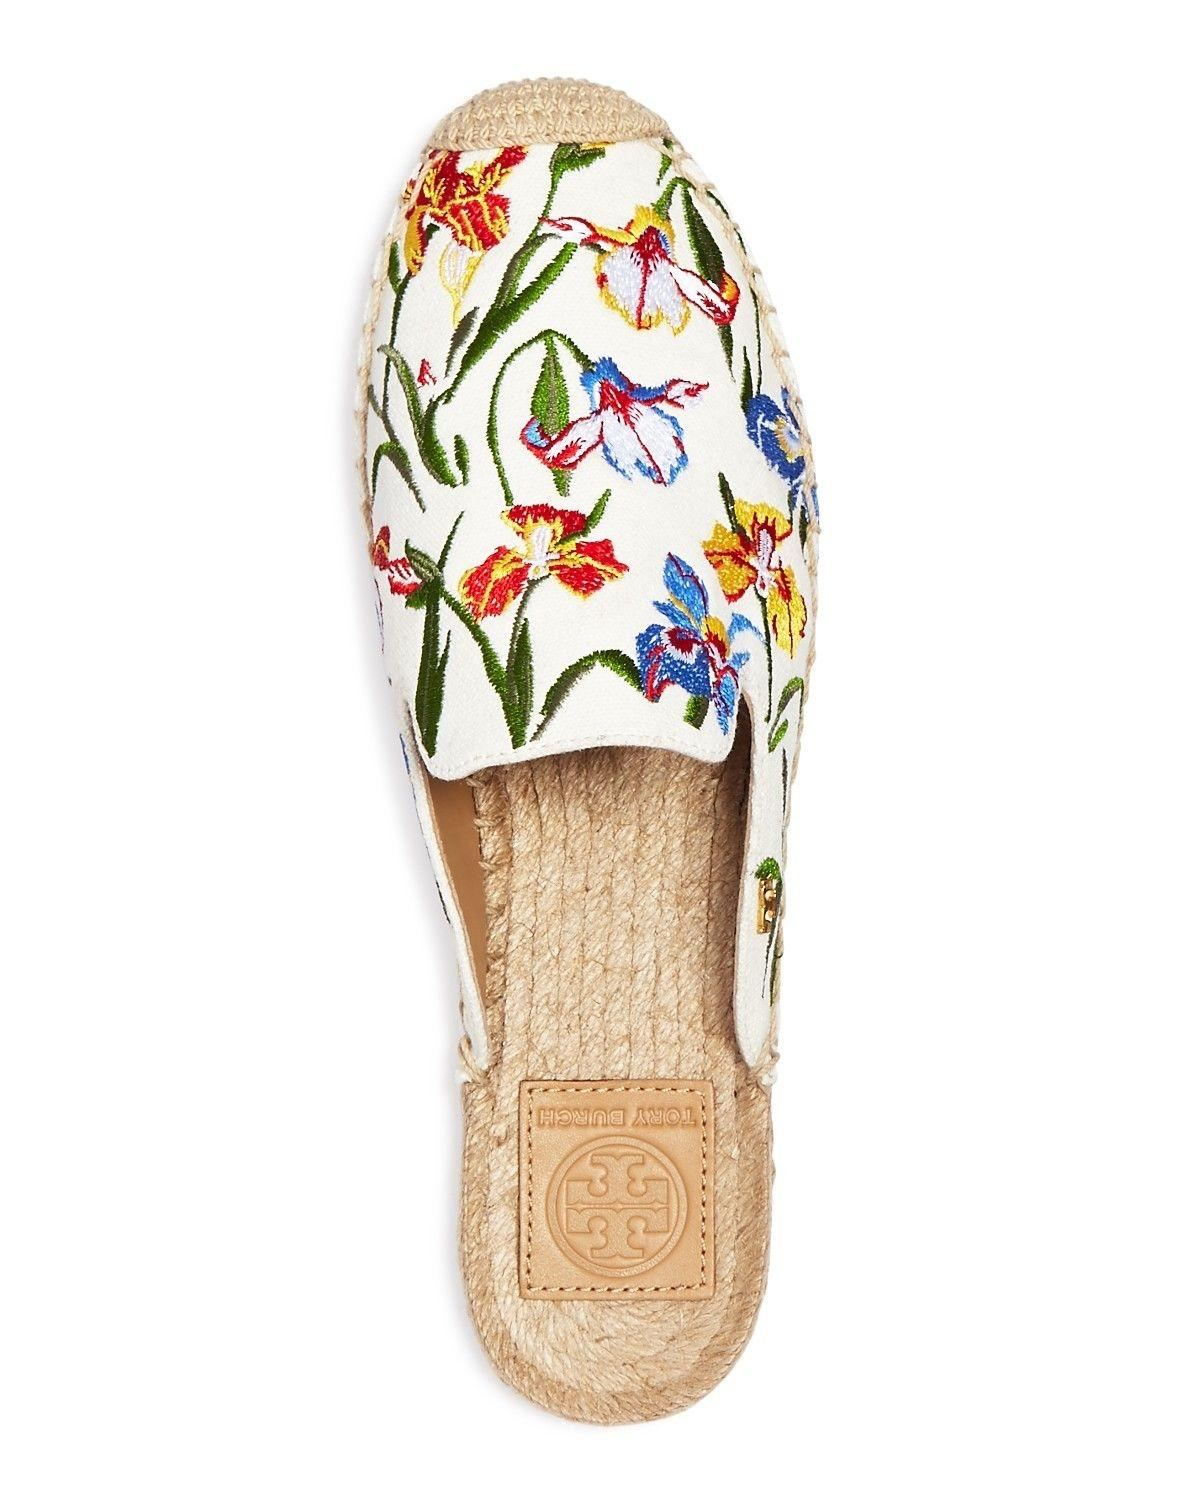 9efe87324f7647 ... Tory Burch Ivory Ivory Ivory Embroidered Max Espadrille Floral Mules Slides  Size US 10 Regular ...